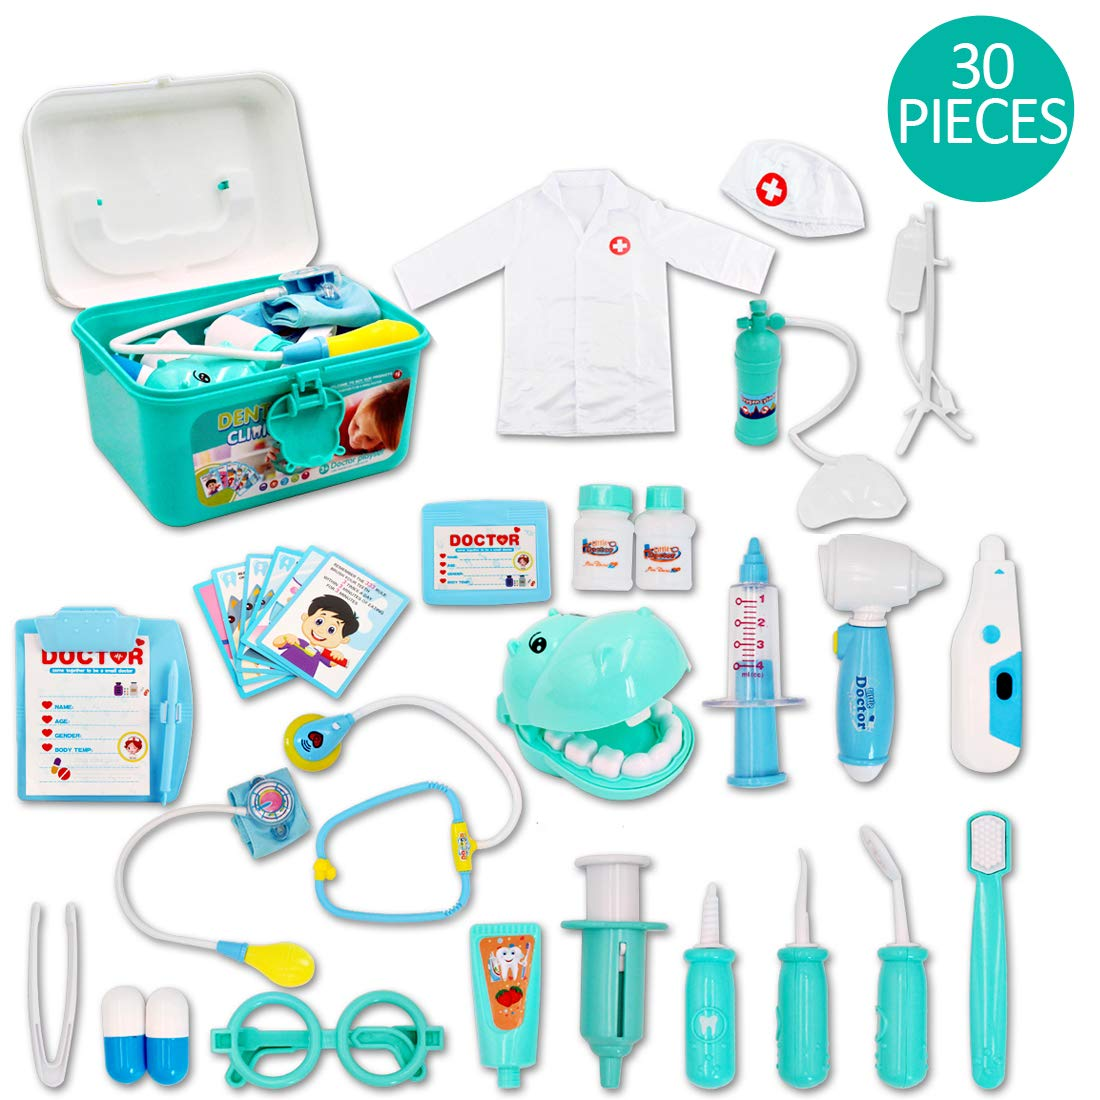 Kids Role Play Dentist, Surgeon & Vet Medical 30 Piece Kit for £12.74 on Amazon